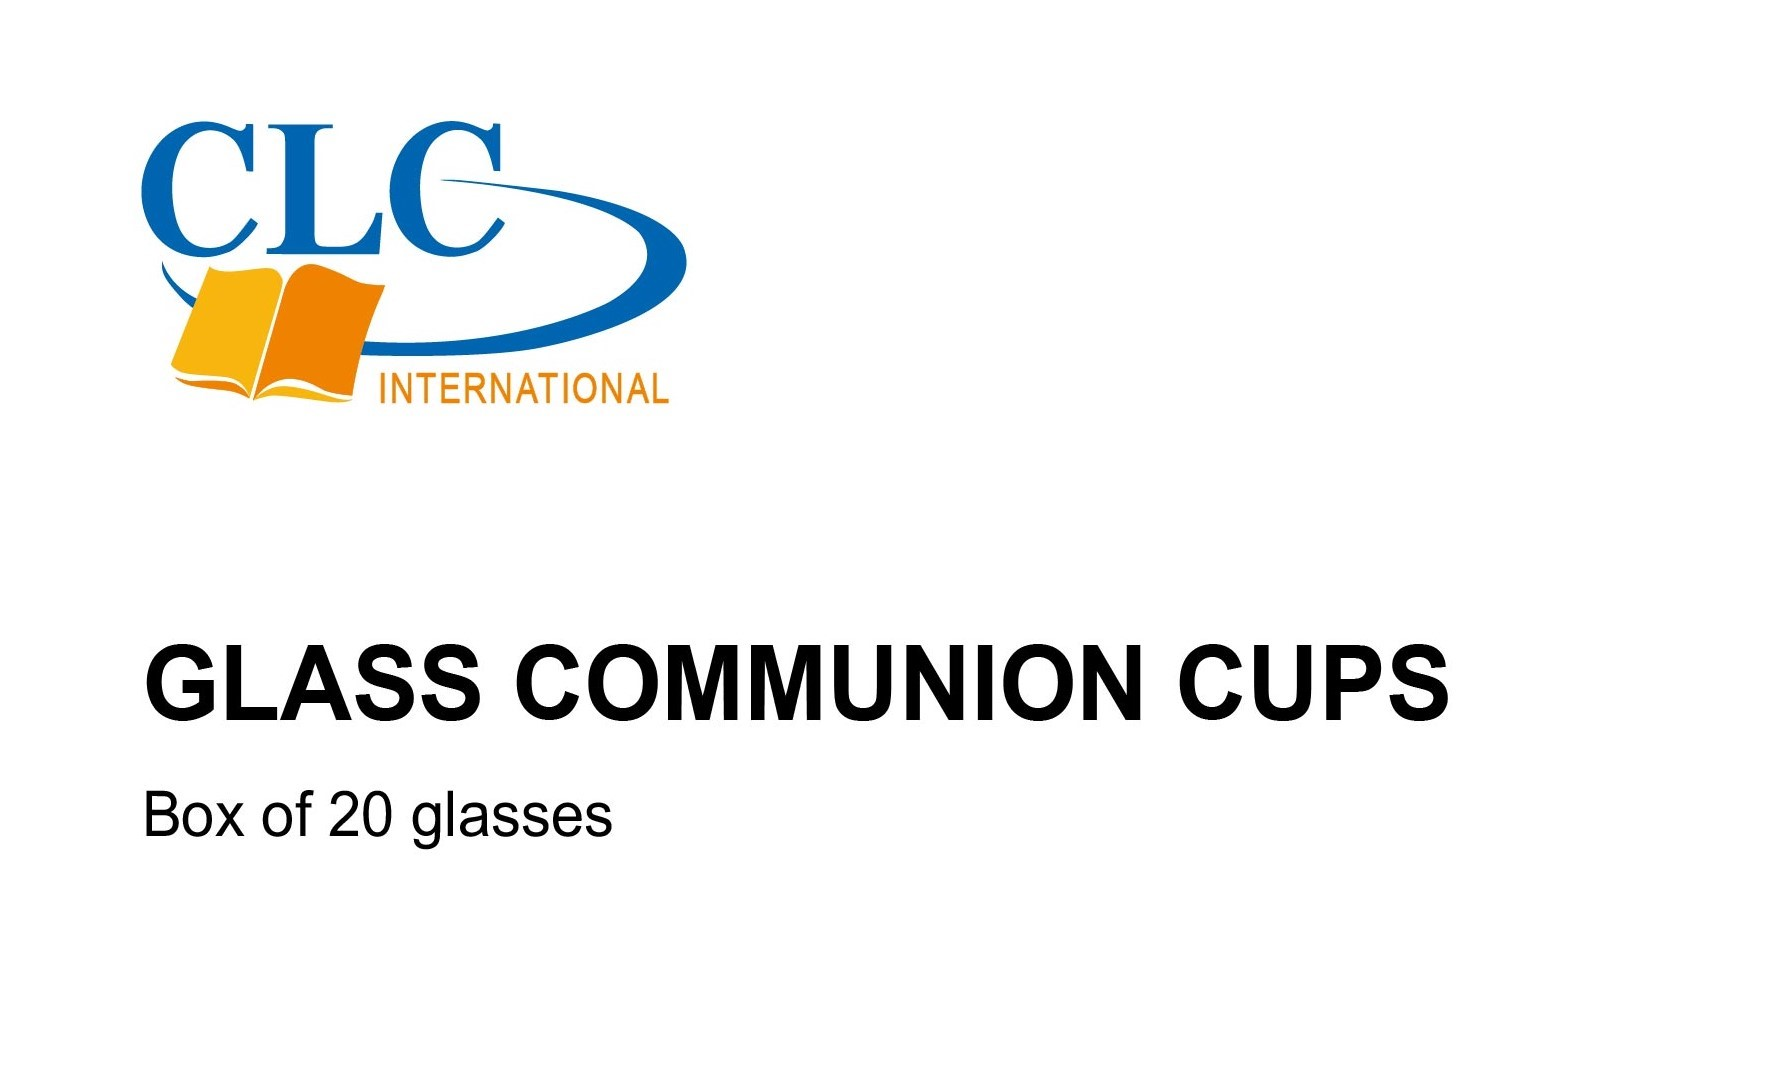 CLC Glass Communion Cups - Pack of 20